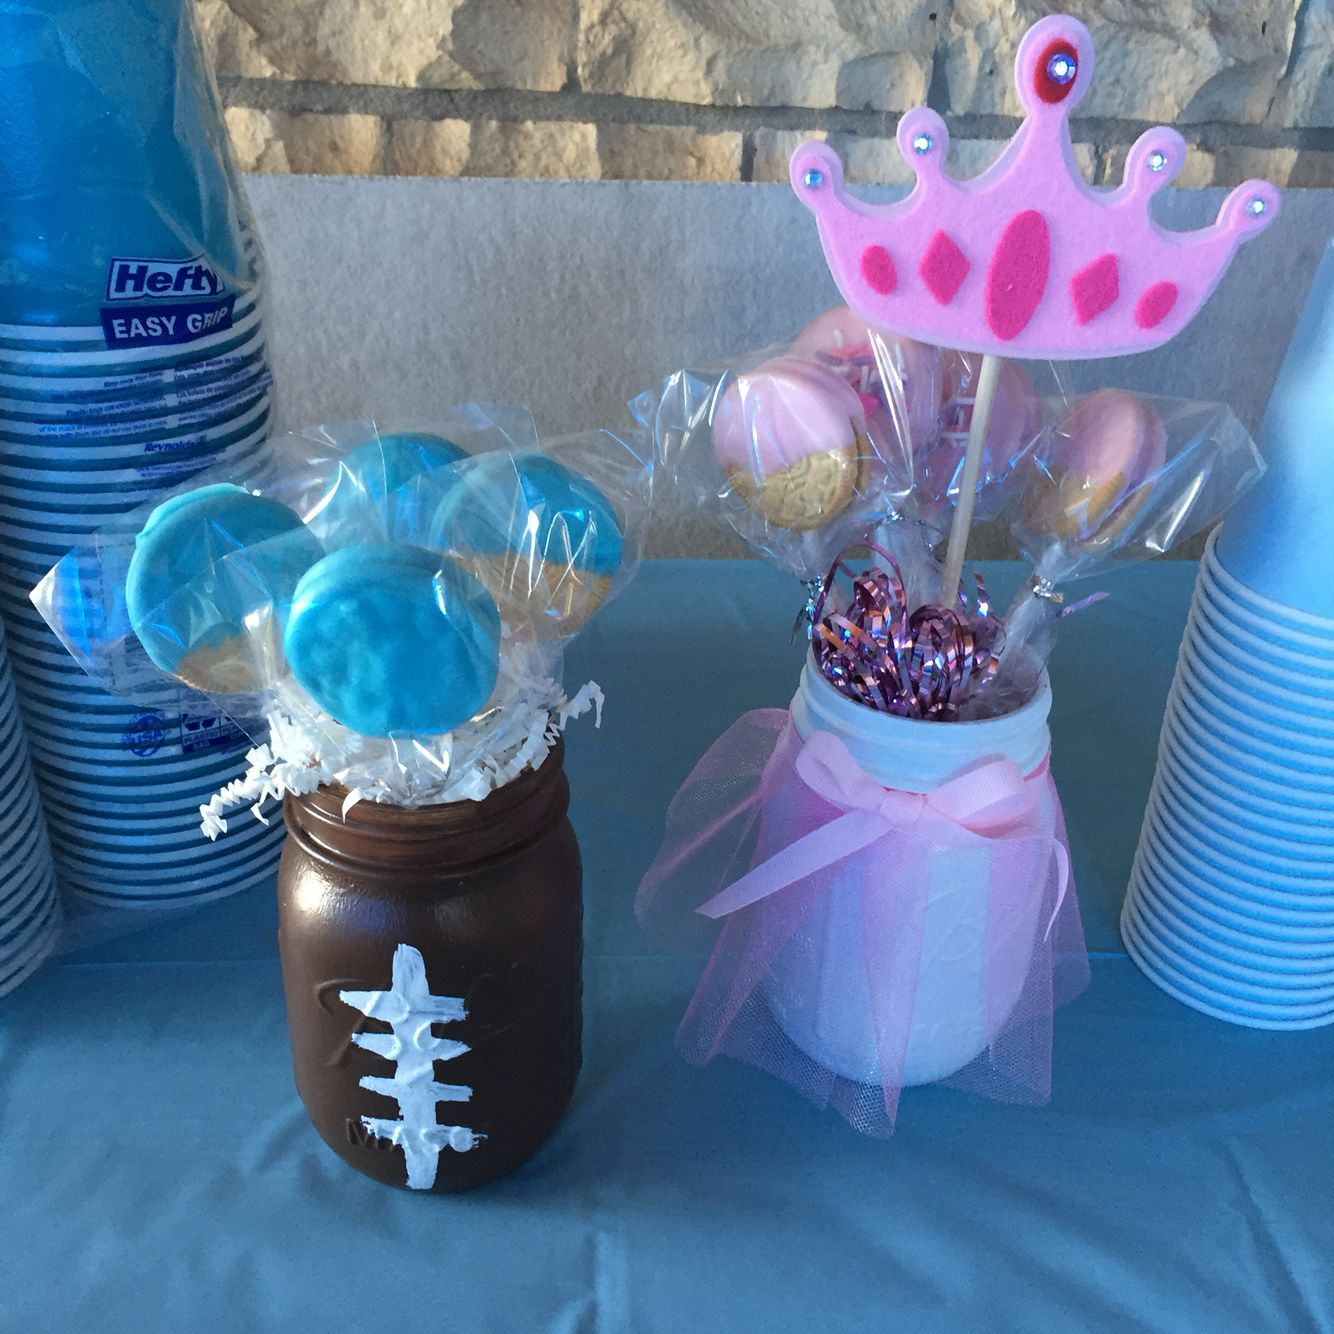 Touchdowns Or Tutus Gender Reveal Centerpieces With Vanilla Dipped Oreos Gender Reveal Party Decorations Tutus Gender Reveal Gender Reveal Party Games